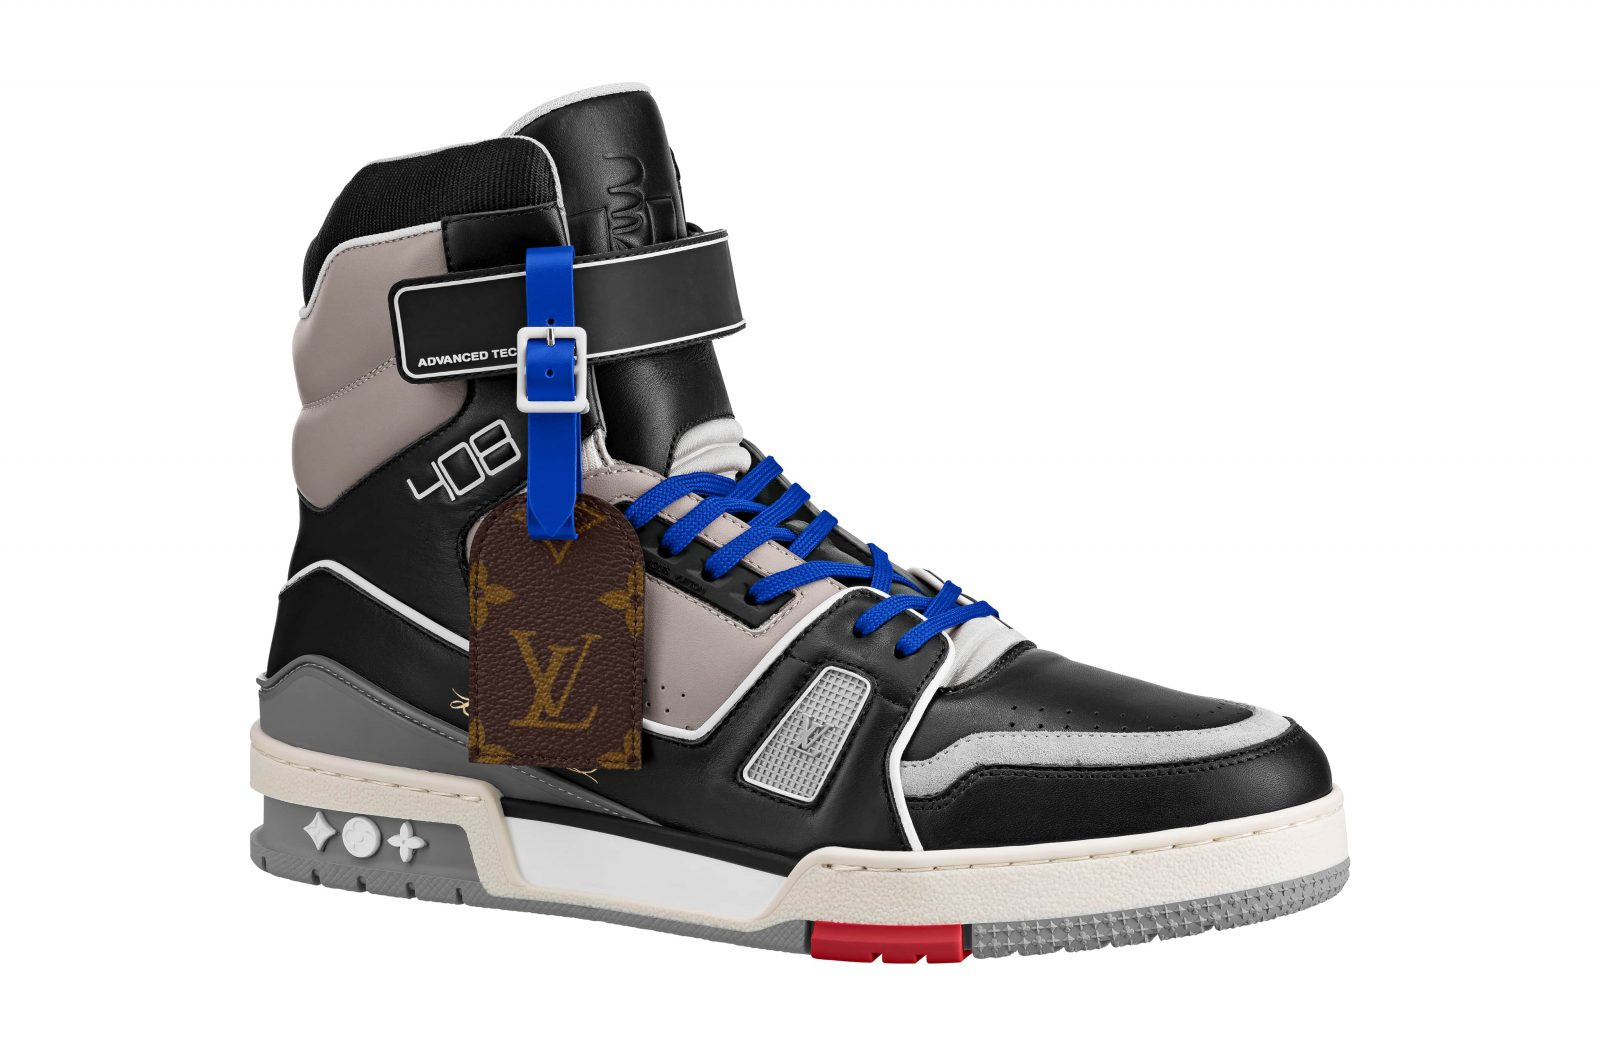 Louis Vuitton 408 Global Sneakers by Virgil Abloh - New York edition